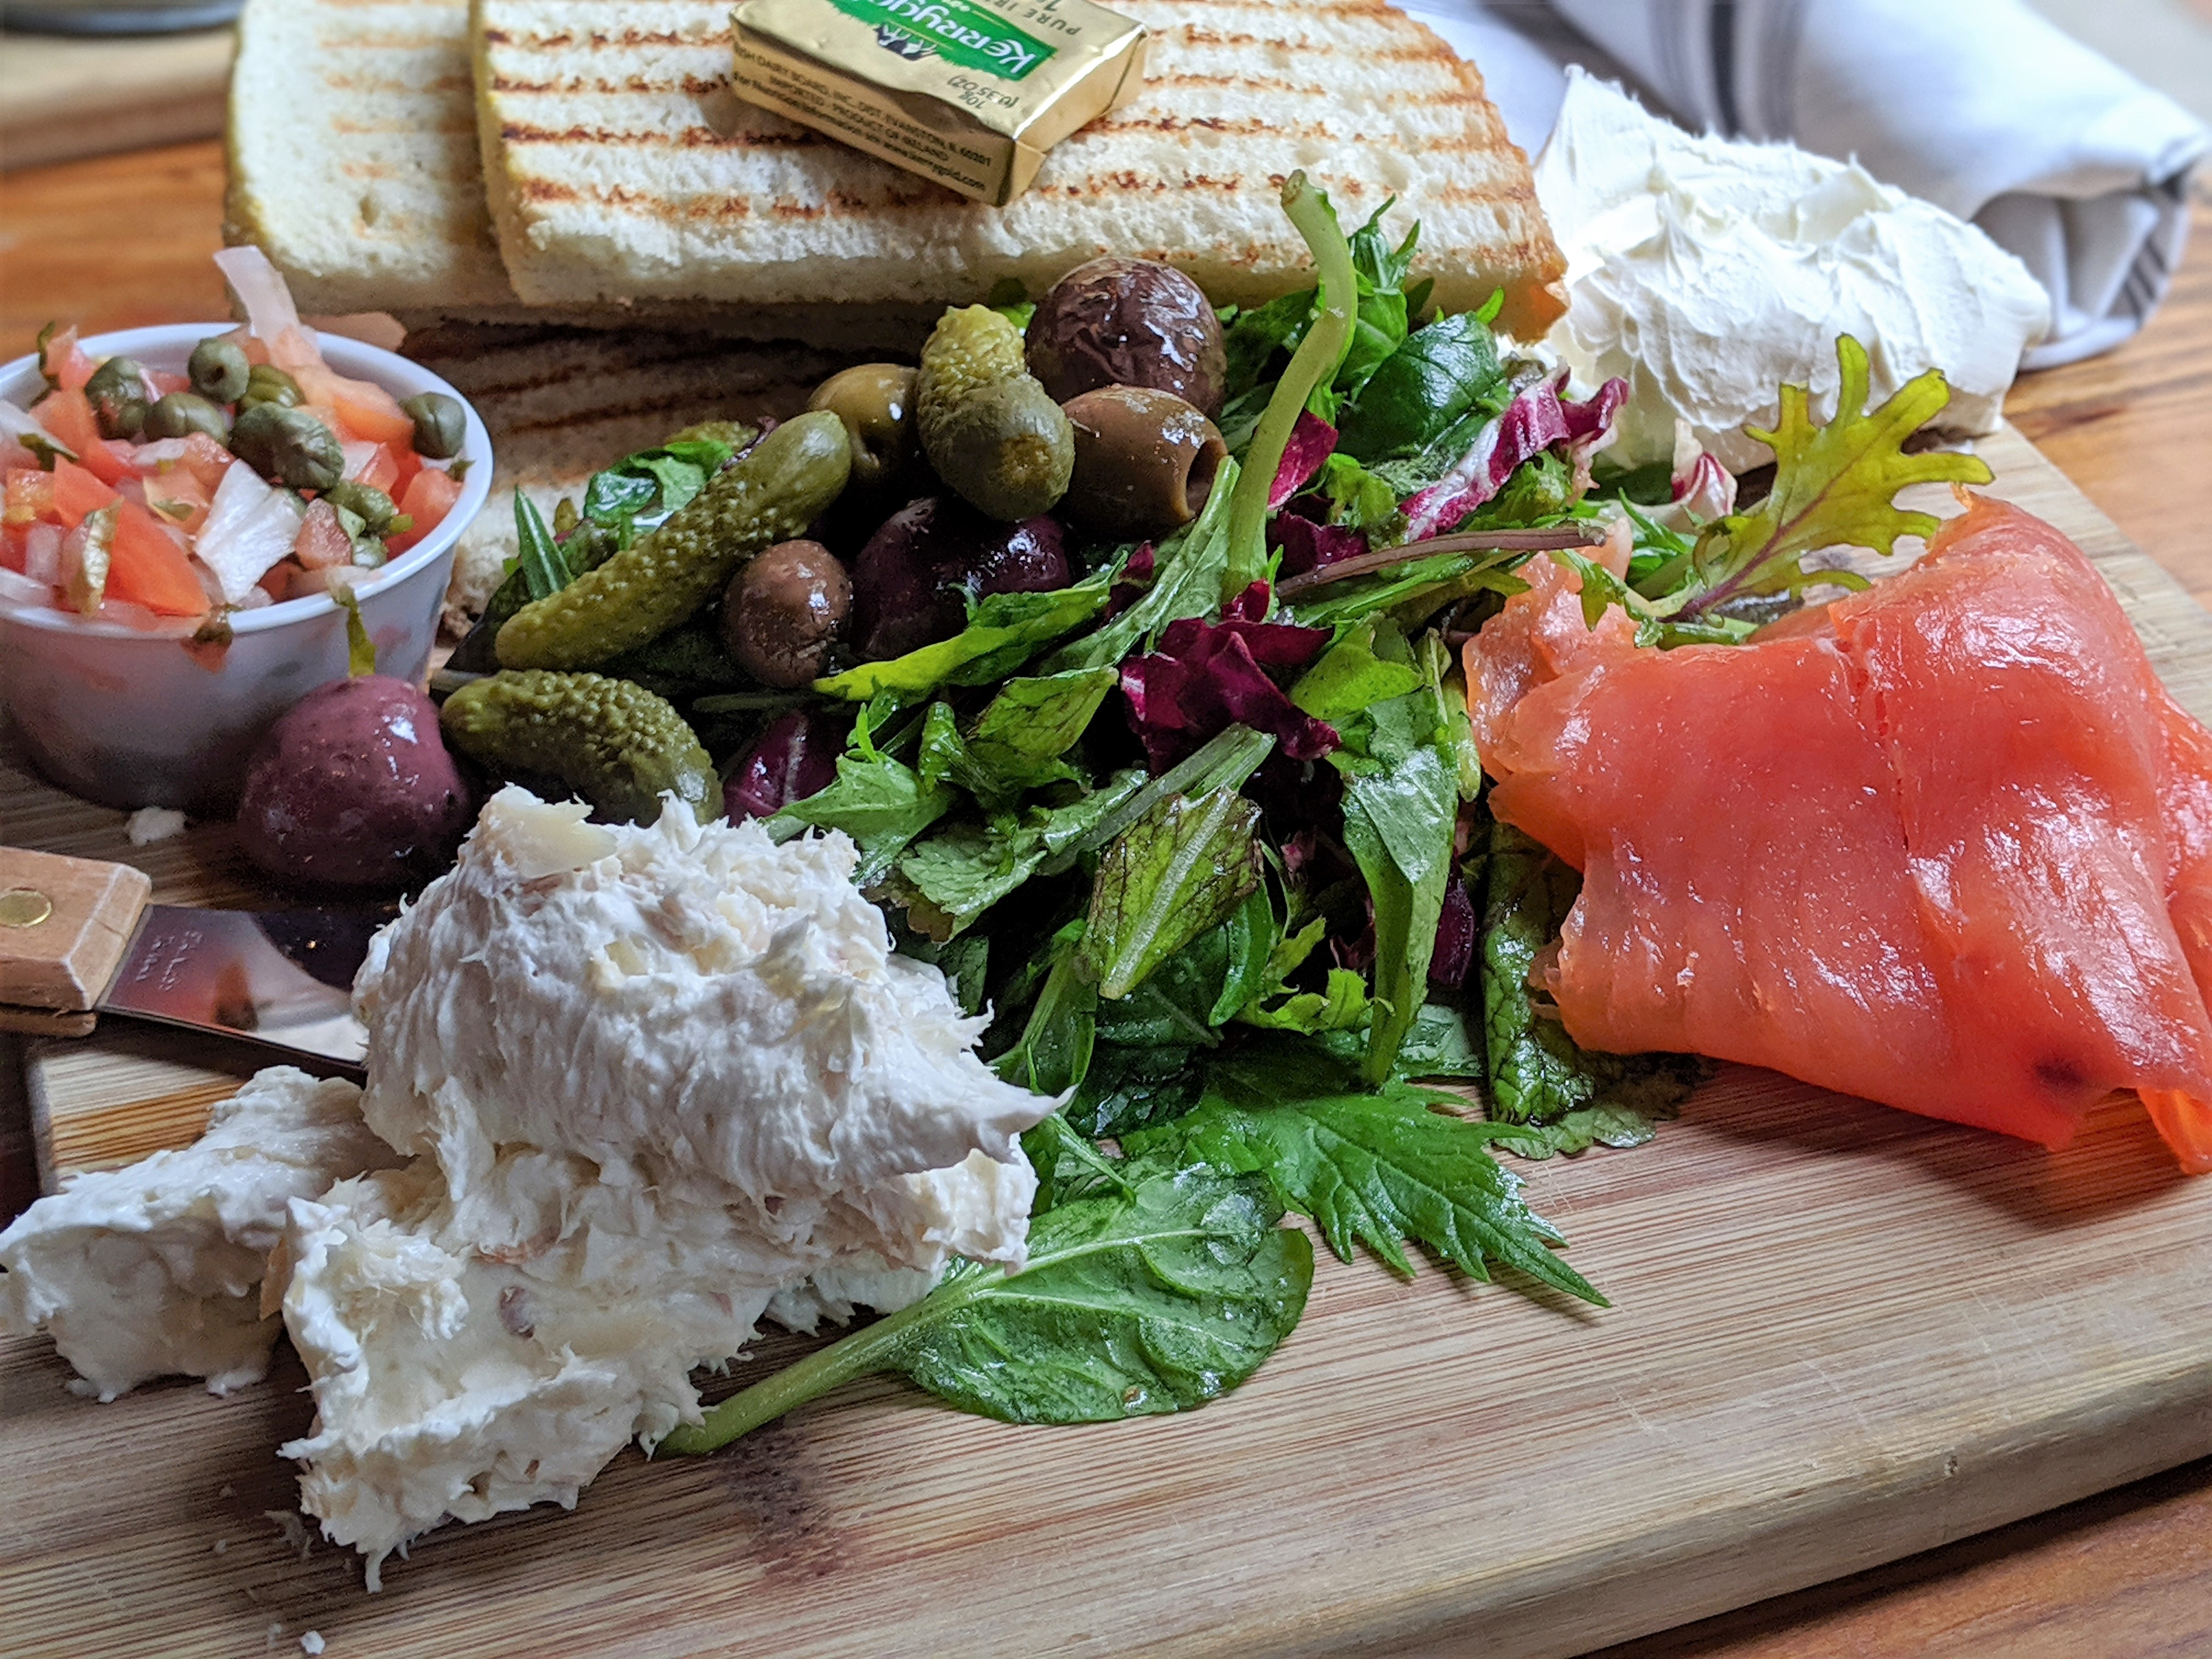 Smoked Salmon brunch from Peckish Pig